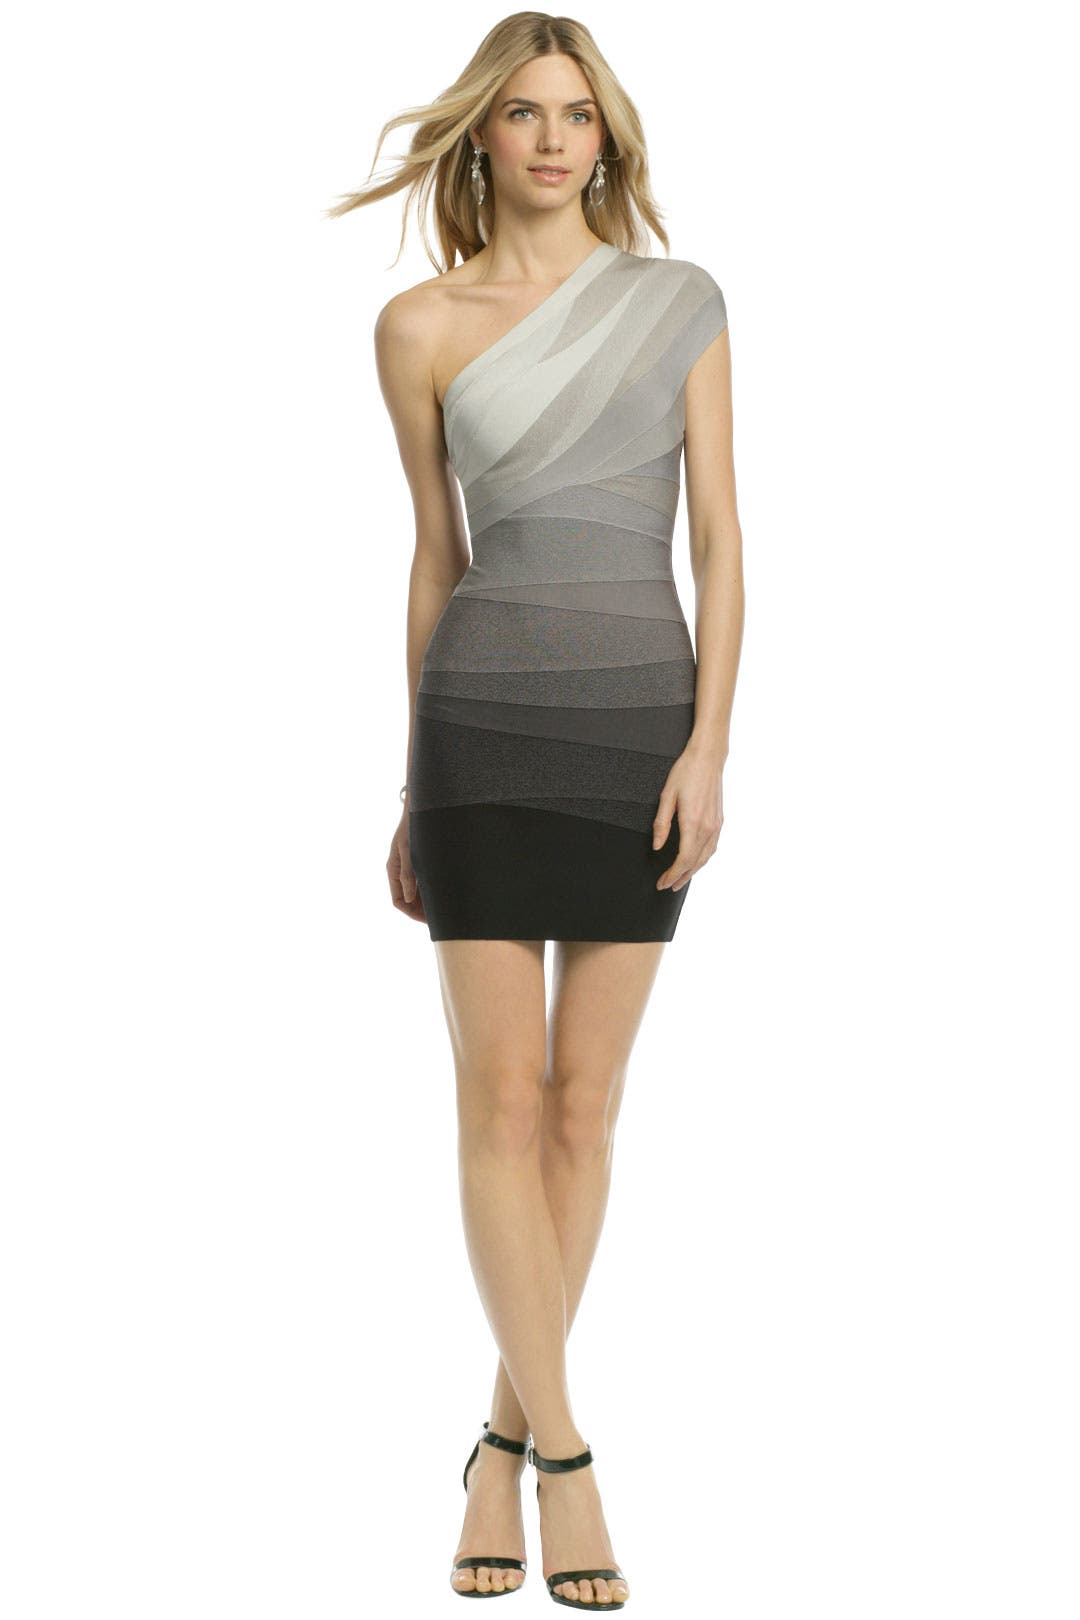 Stormy Skies Bandage Dress by Hervé Léger